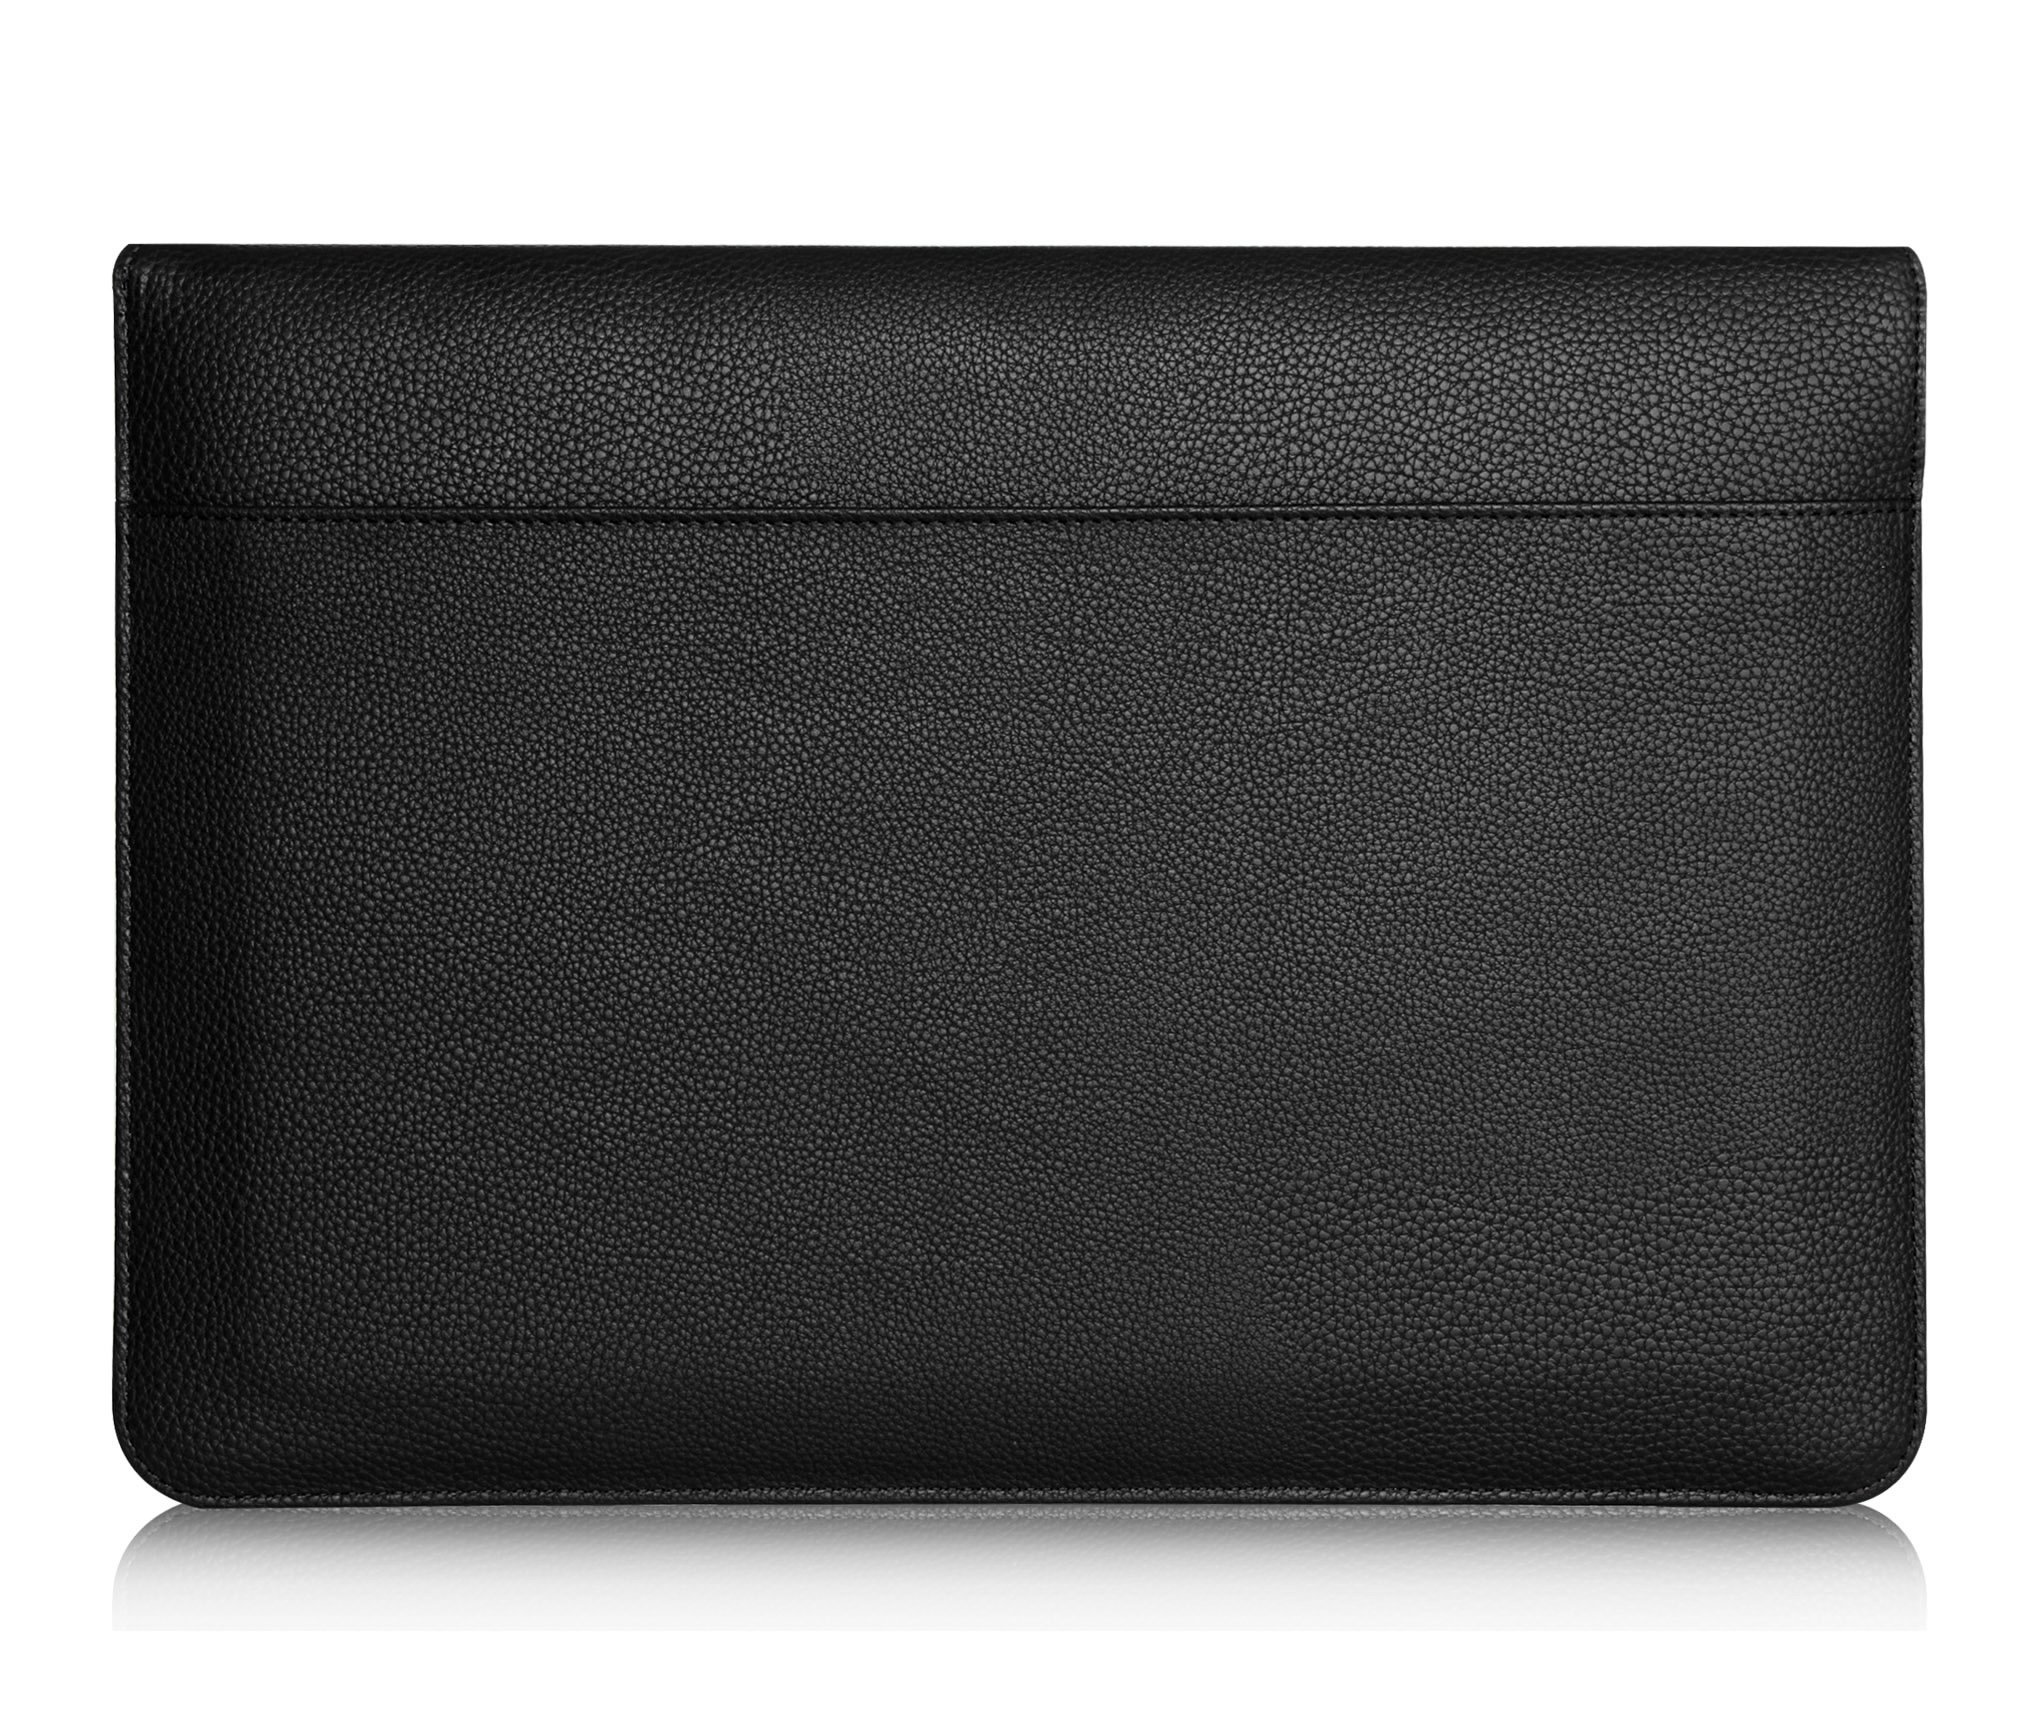 ProCase Surface Laptop 2017 / Surface Book MacBook Pro 13 Case Sleeve, Protective Sleeve Cover for 13'' MacBook Pro 2018 2017 2016 / Pro Retina/MacBook Air 13.3'' / Surface Book Tablet Laptop -Black by ProCase